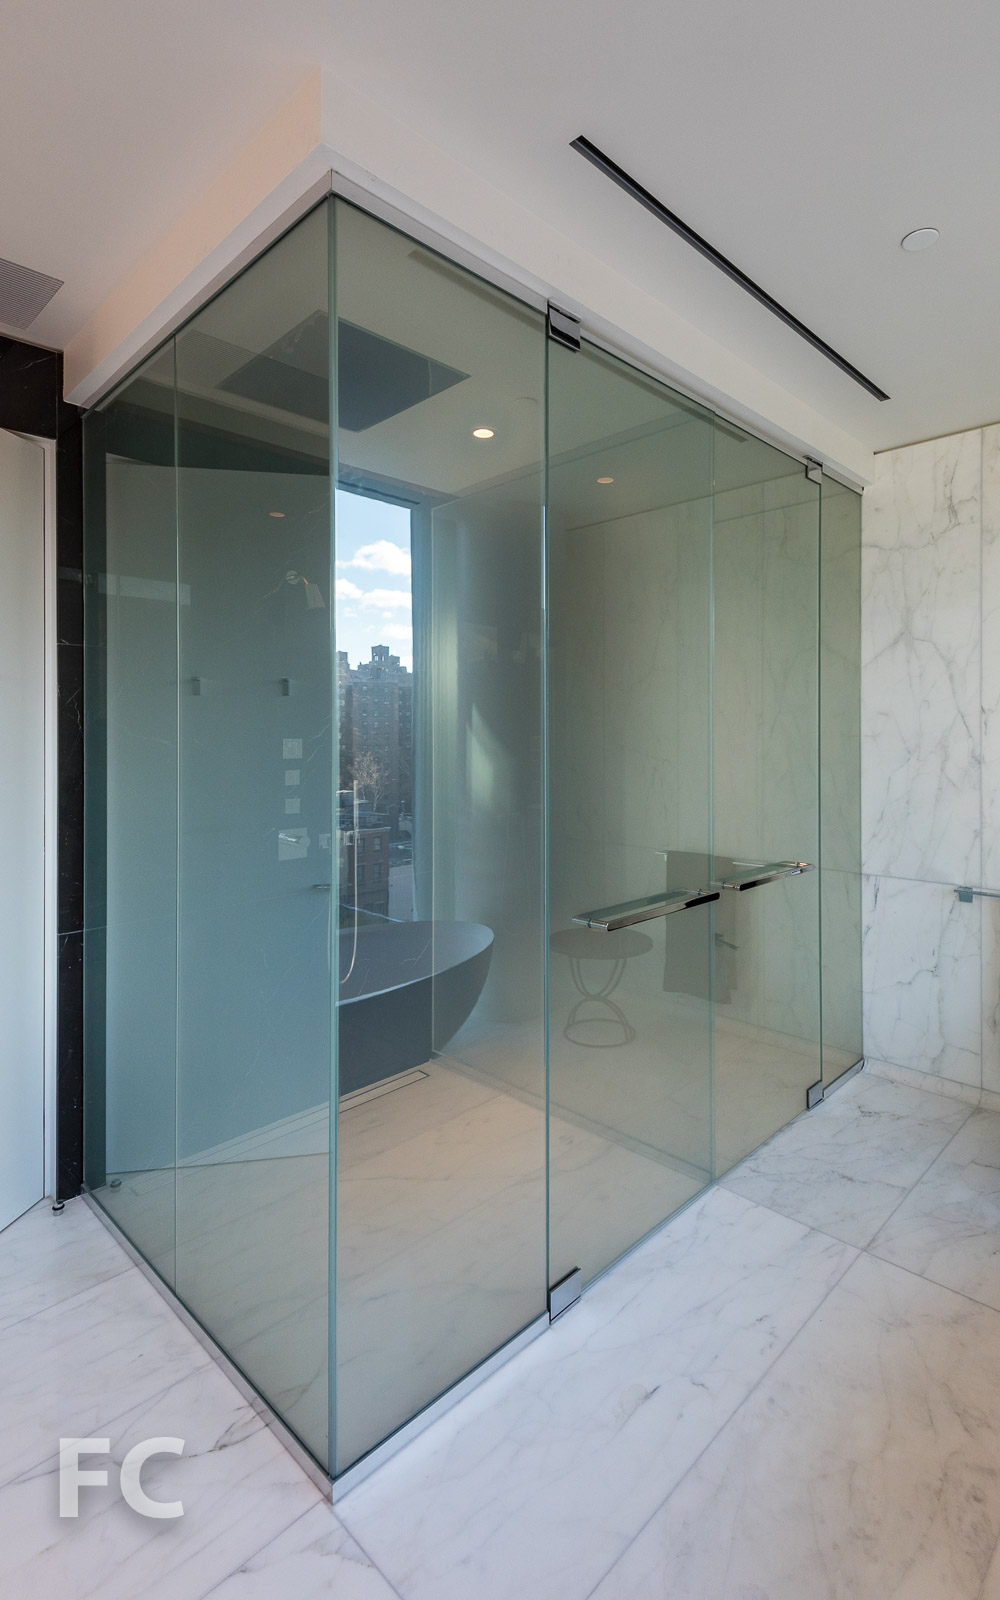 Shower and toilet enclosure in the master bathroom.